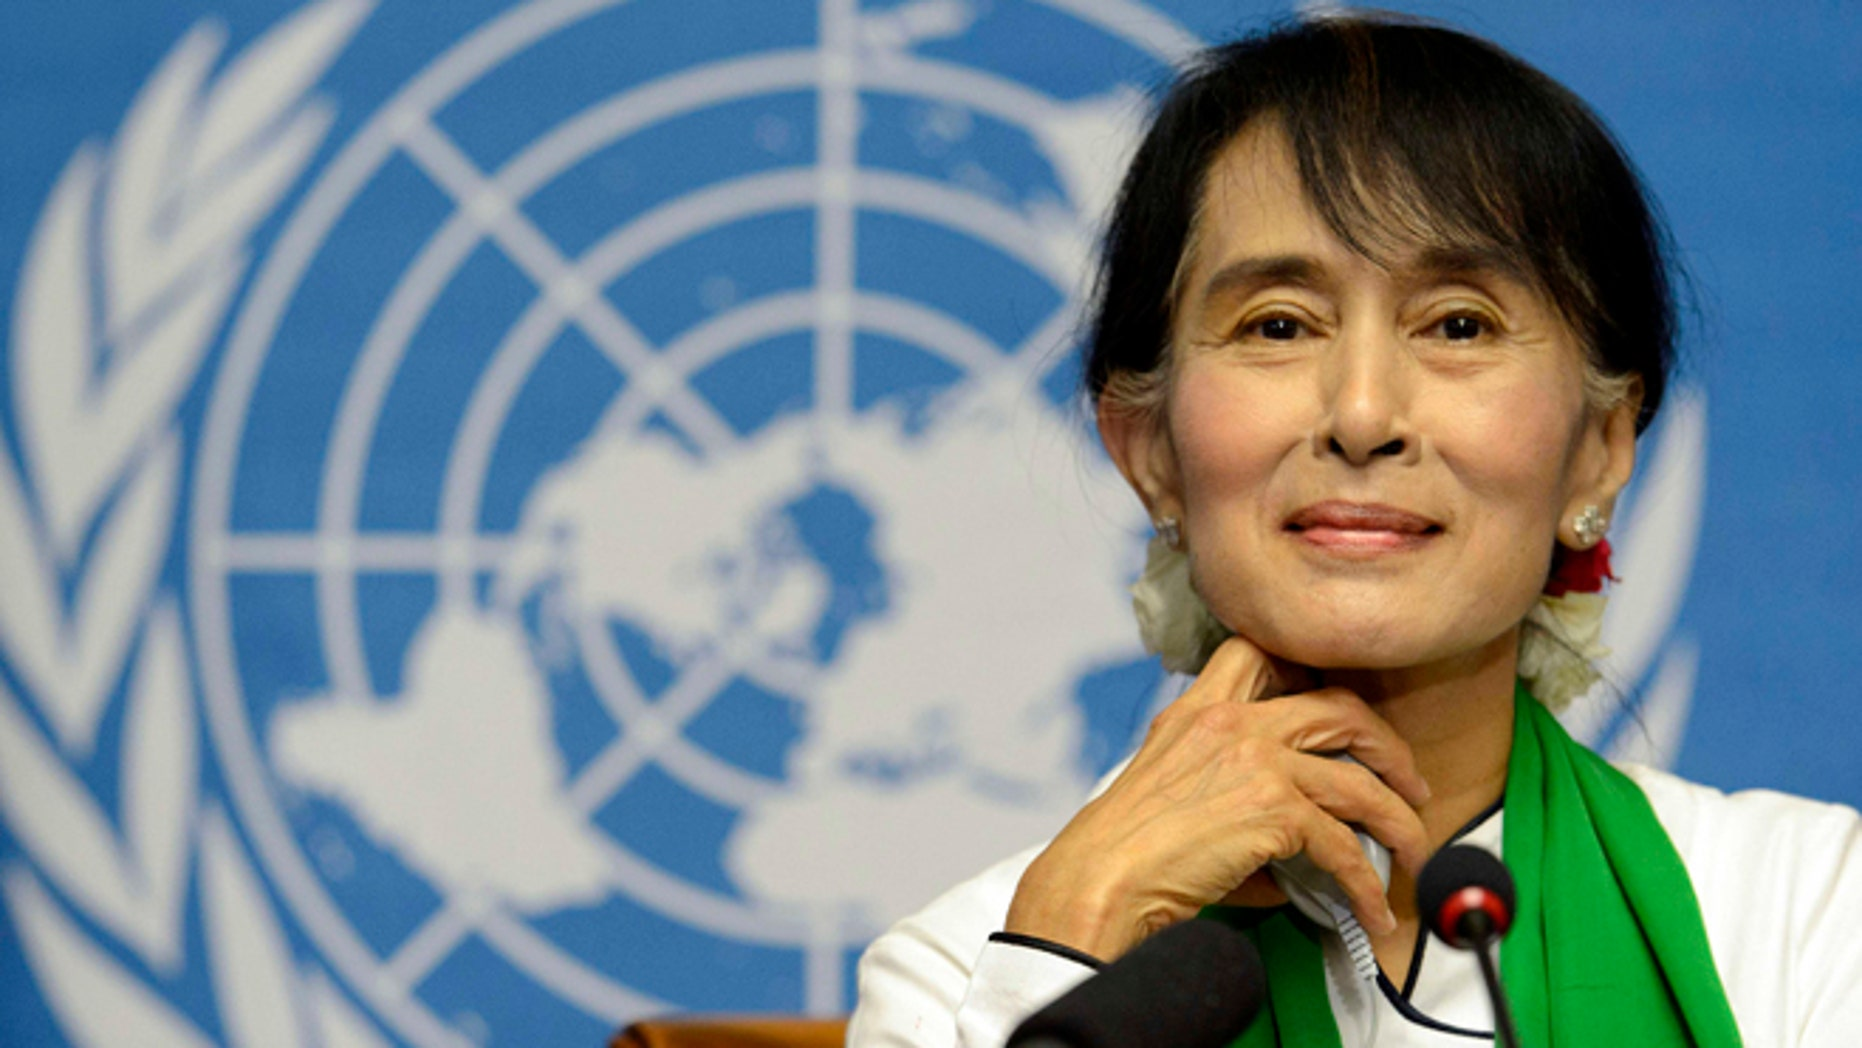 June 14, 2012: Myanmar opposition leader Aung San Suu Kyi attends a news conference during the annual meeting of the International Labour Organization (ILO) in Geneva, Switzerland.